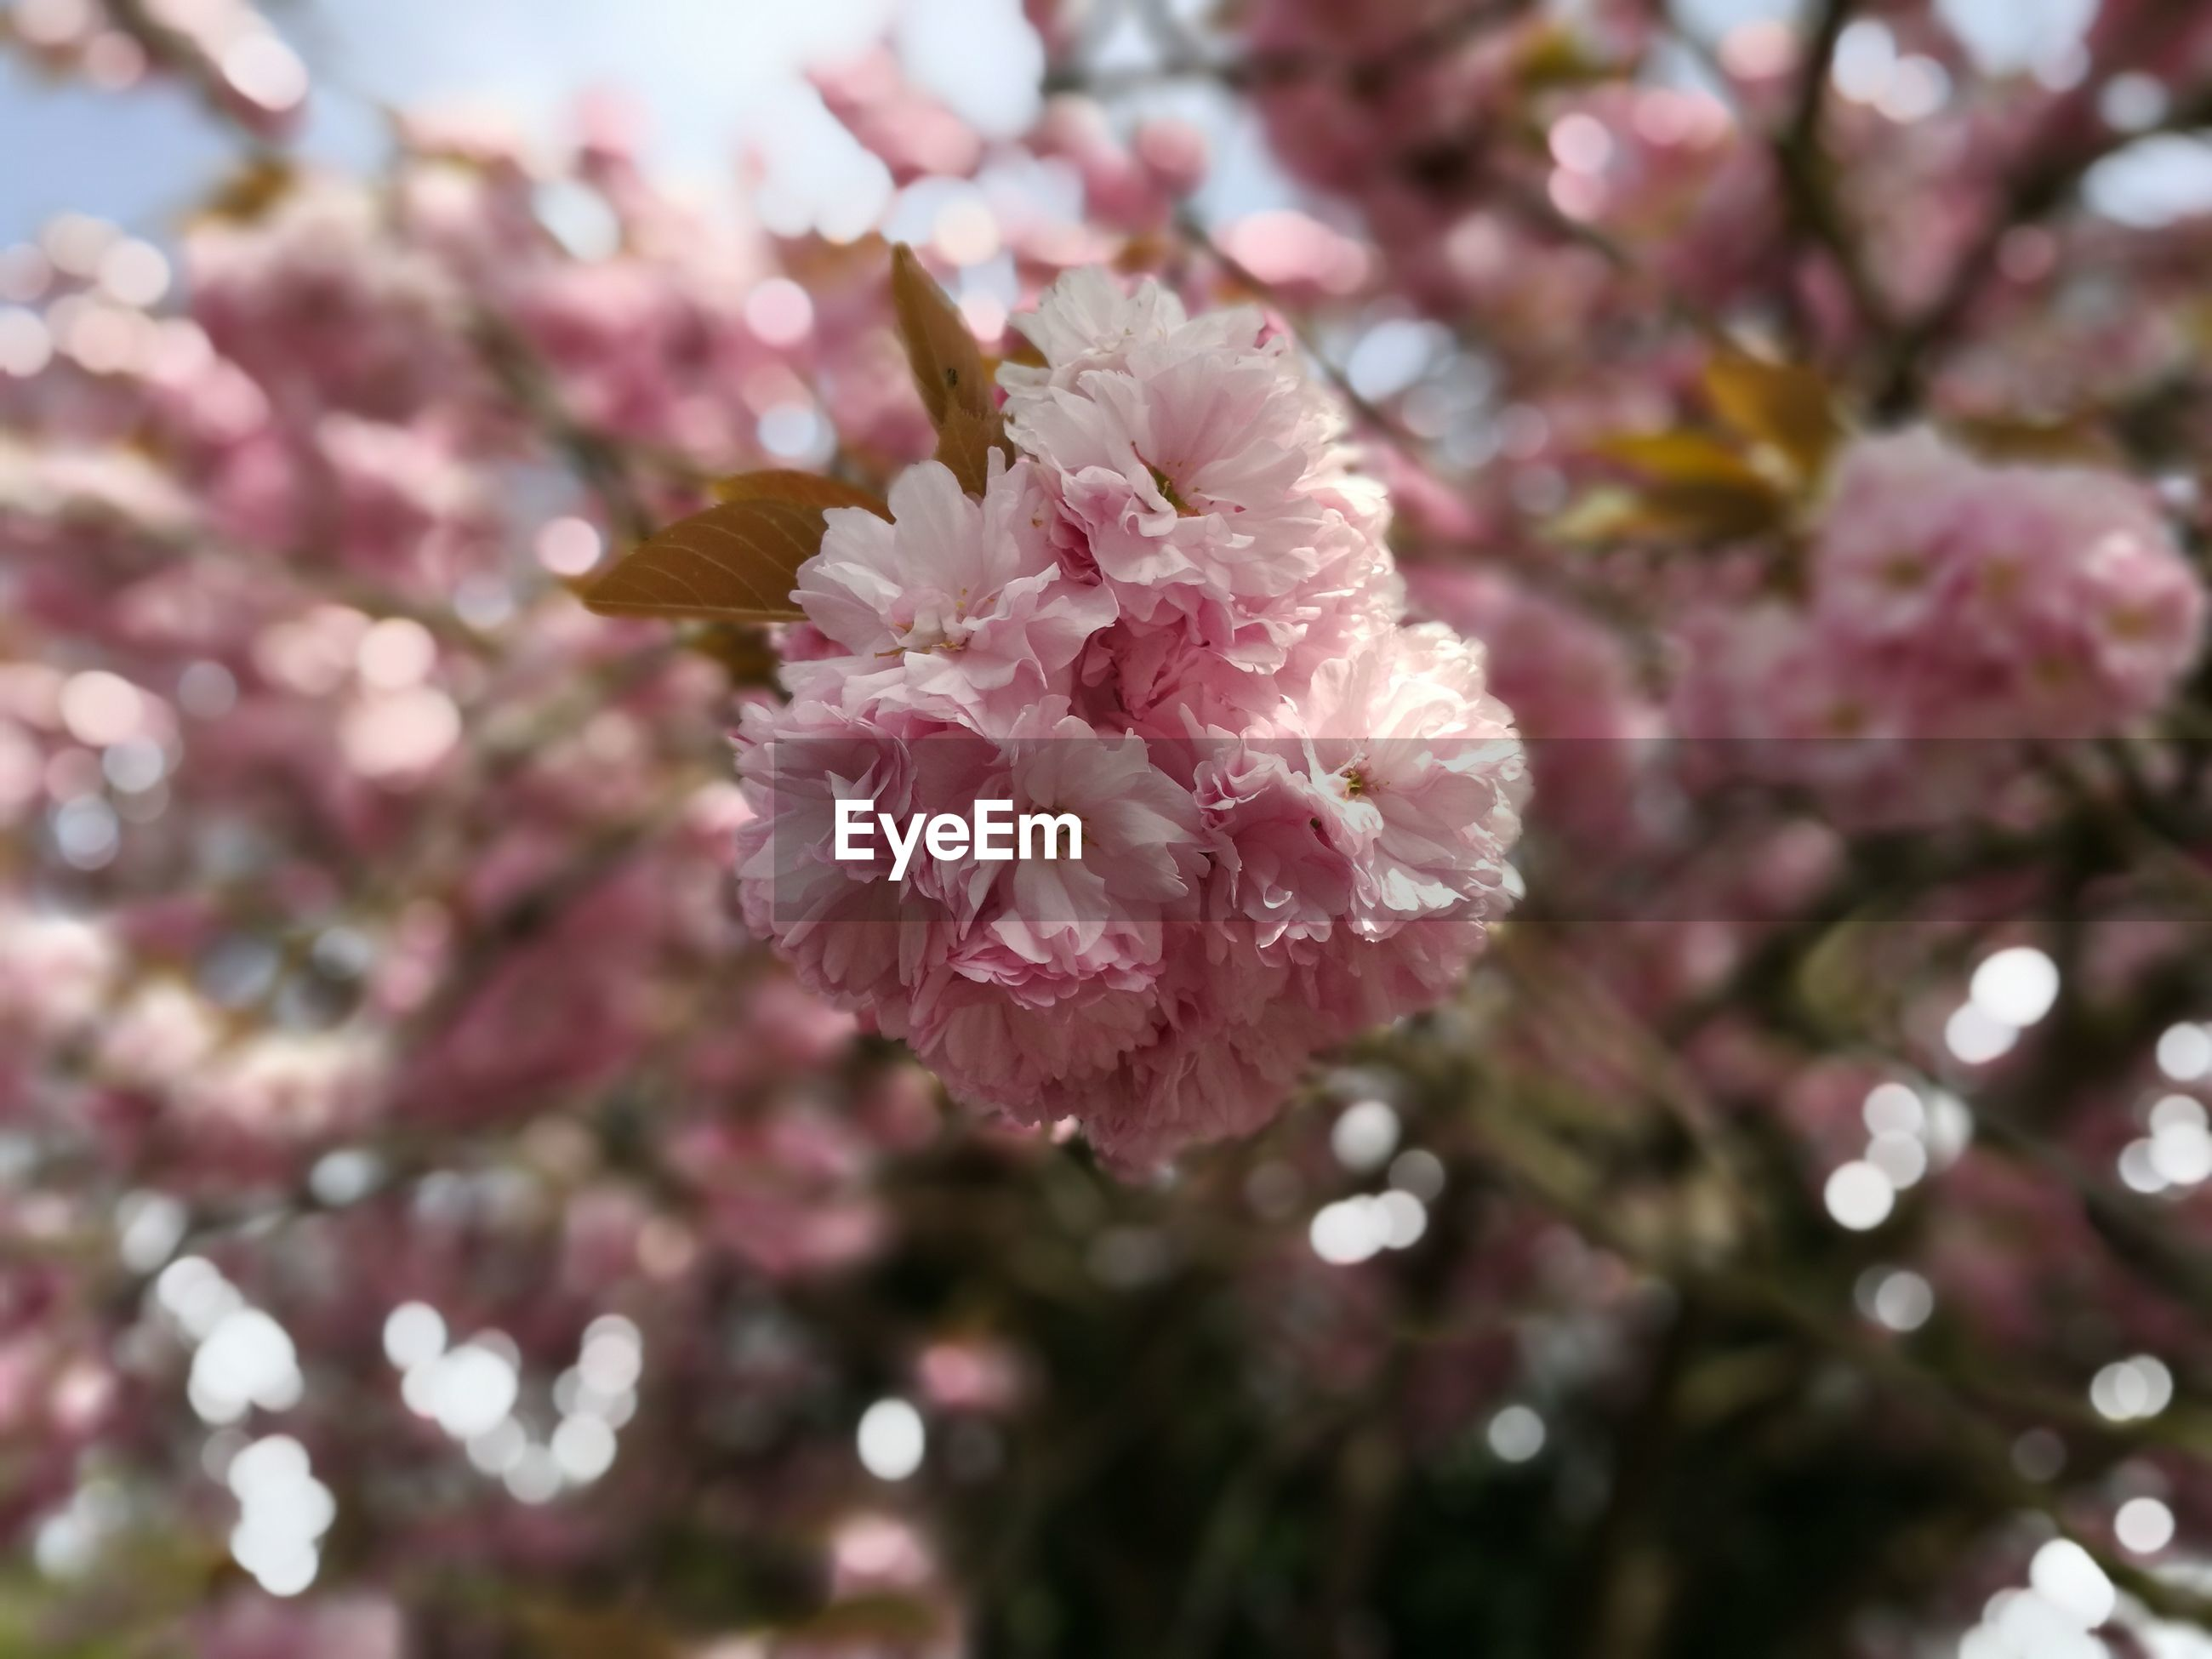 flower, pink color, nature, beauty in nature, petal, growth, freshness, flower head, close-up, no people, fragility, springtime, blossom, outdoors, day